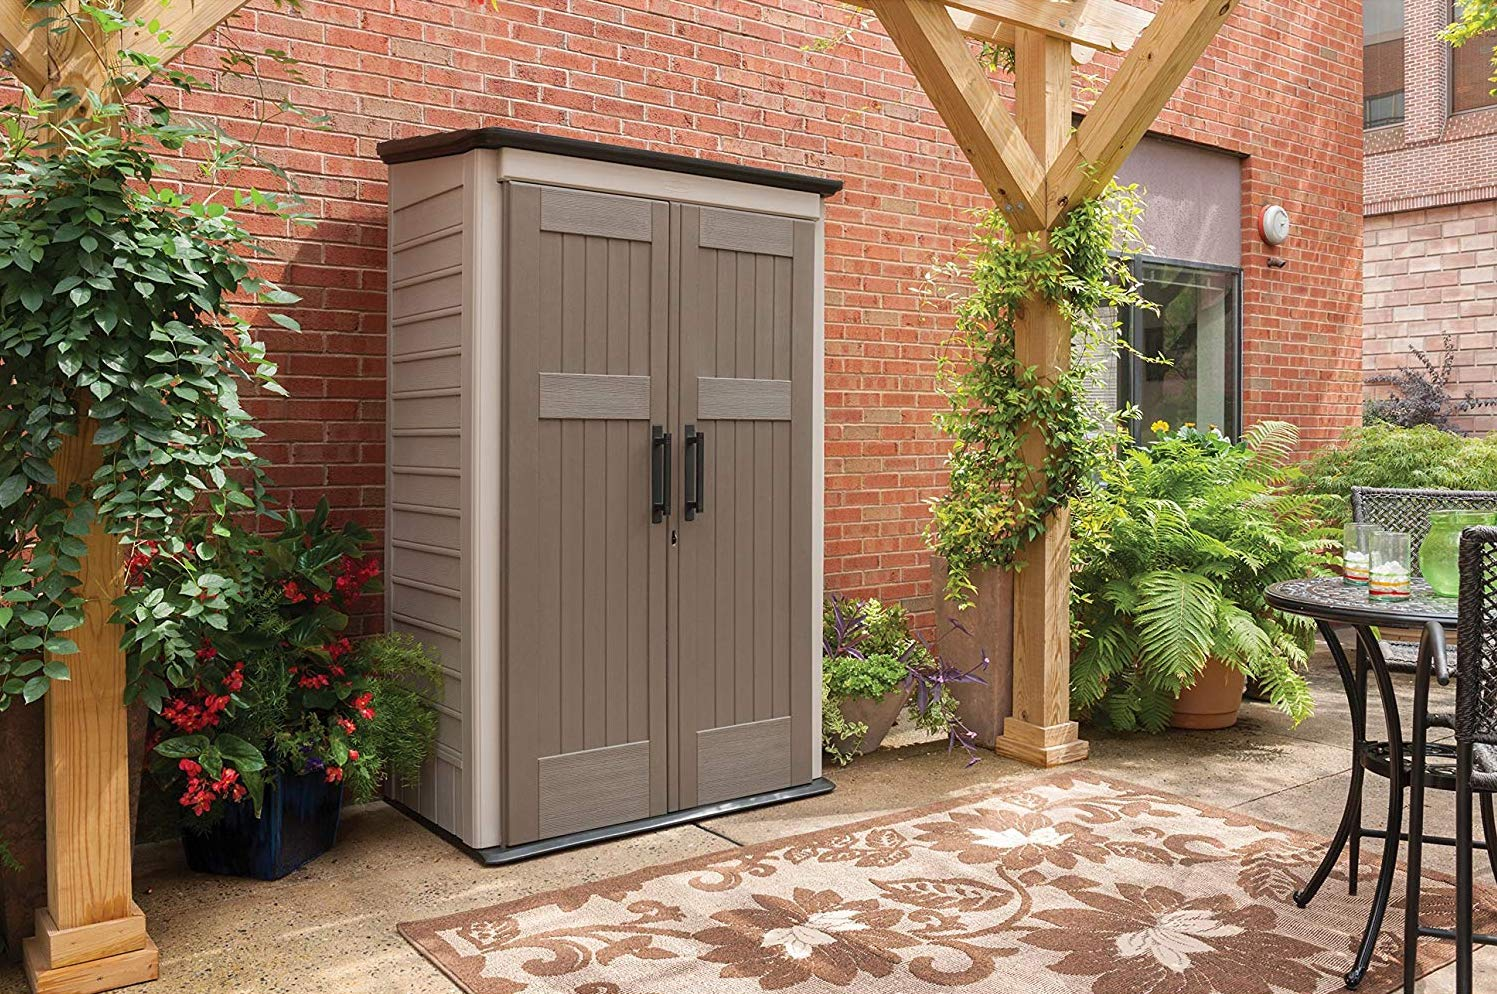 Outdoor sheds for storing your tools, lawn mowers, back-up generators, whatever